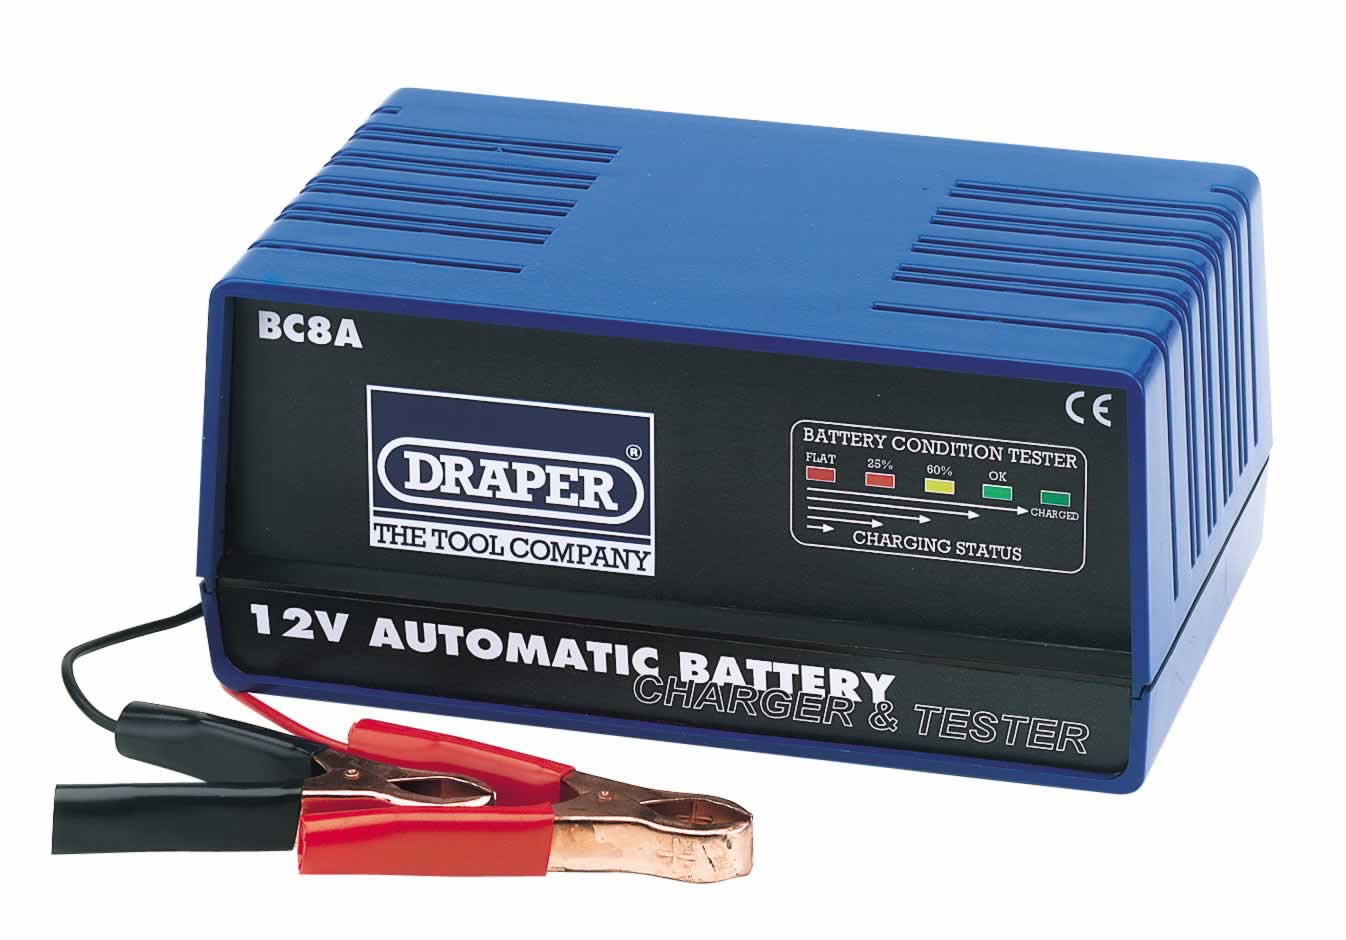 12V AUTOMATIC BATTERY CHARGER - 12A